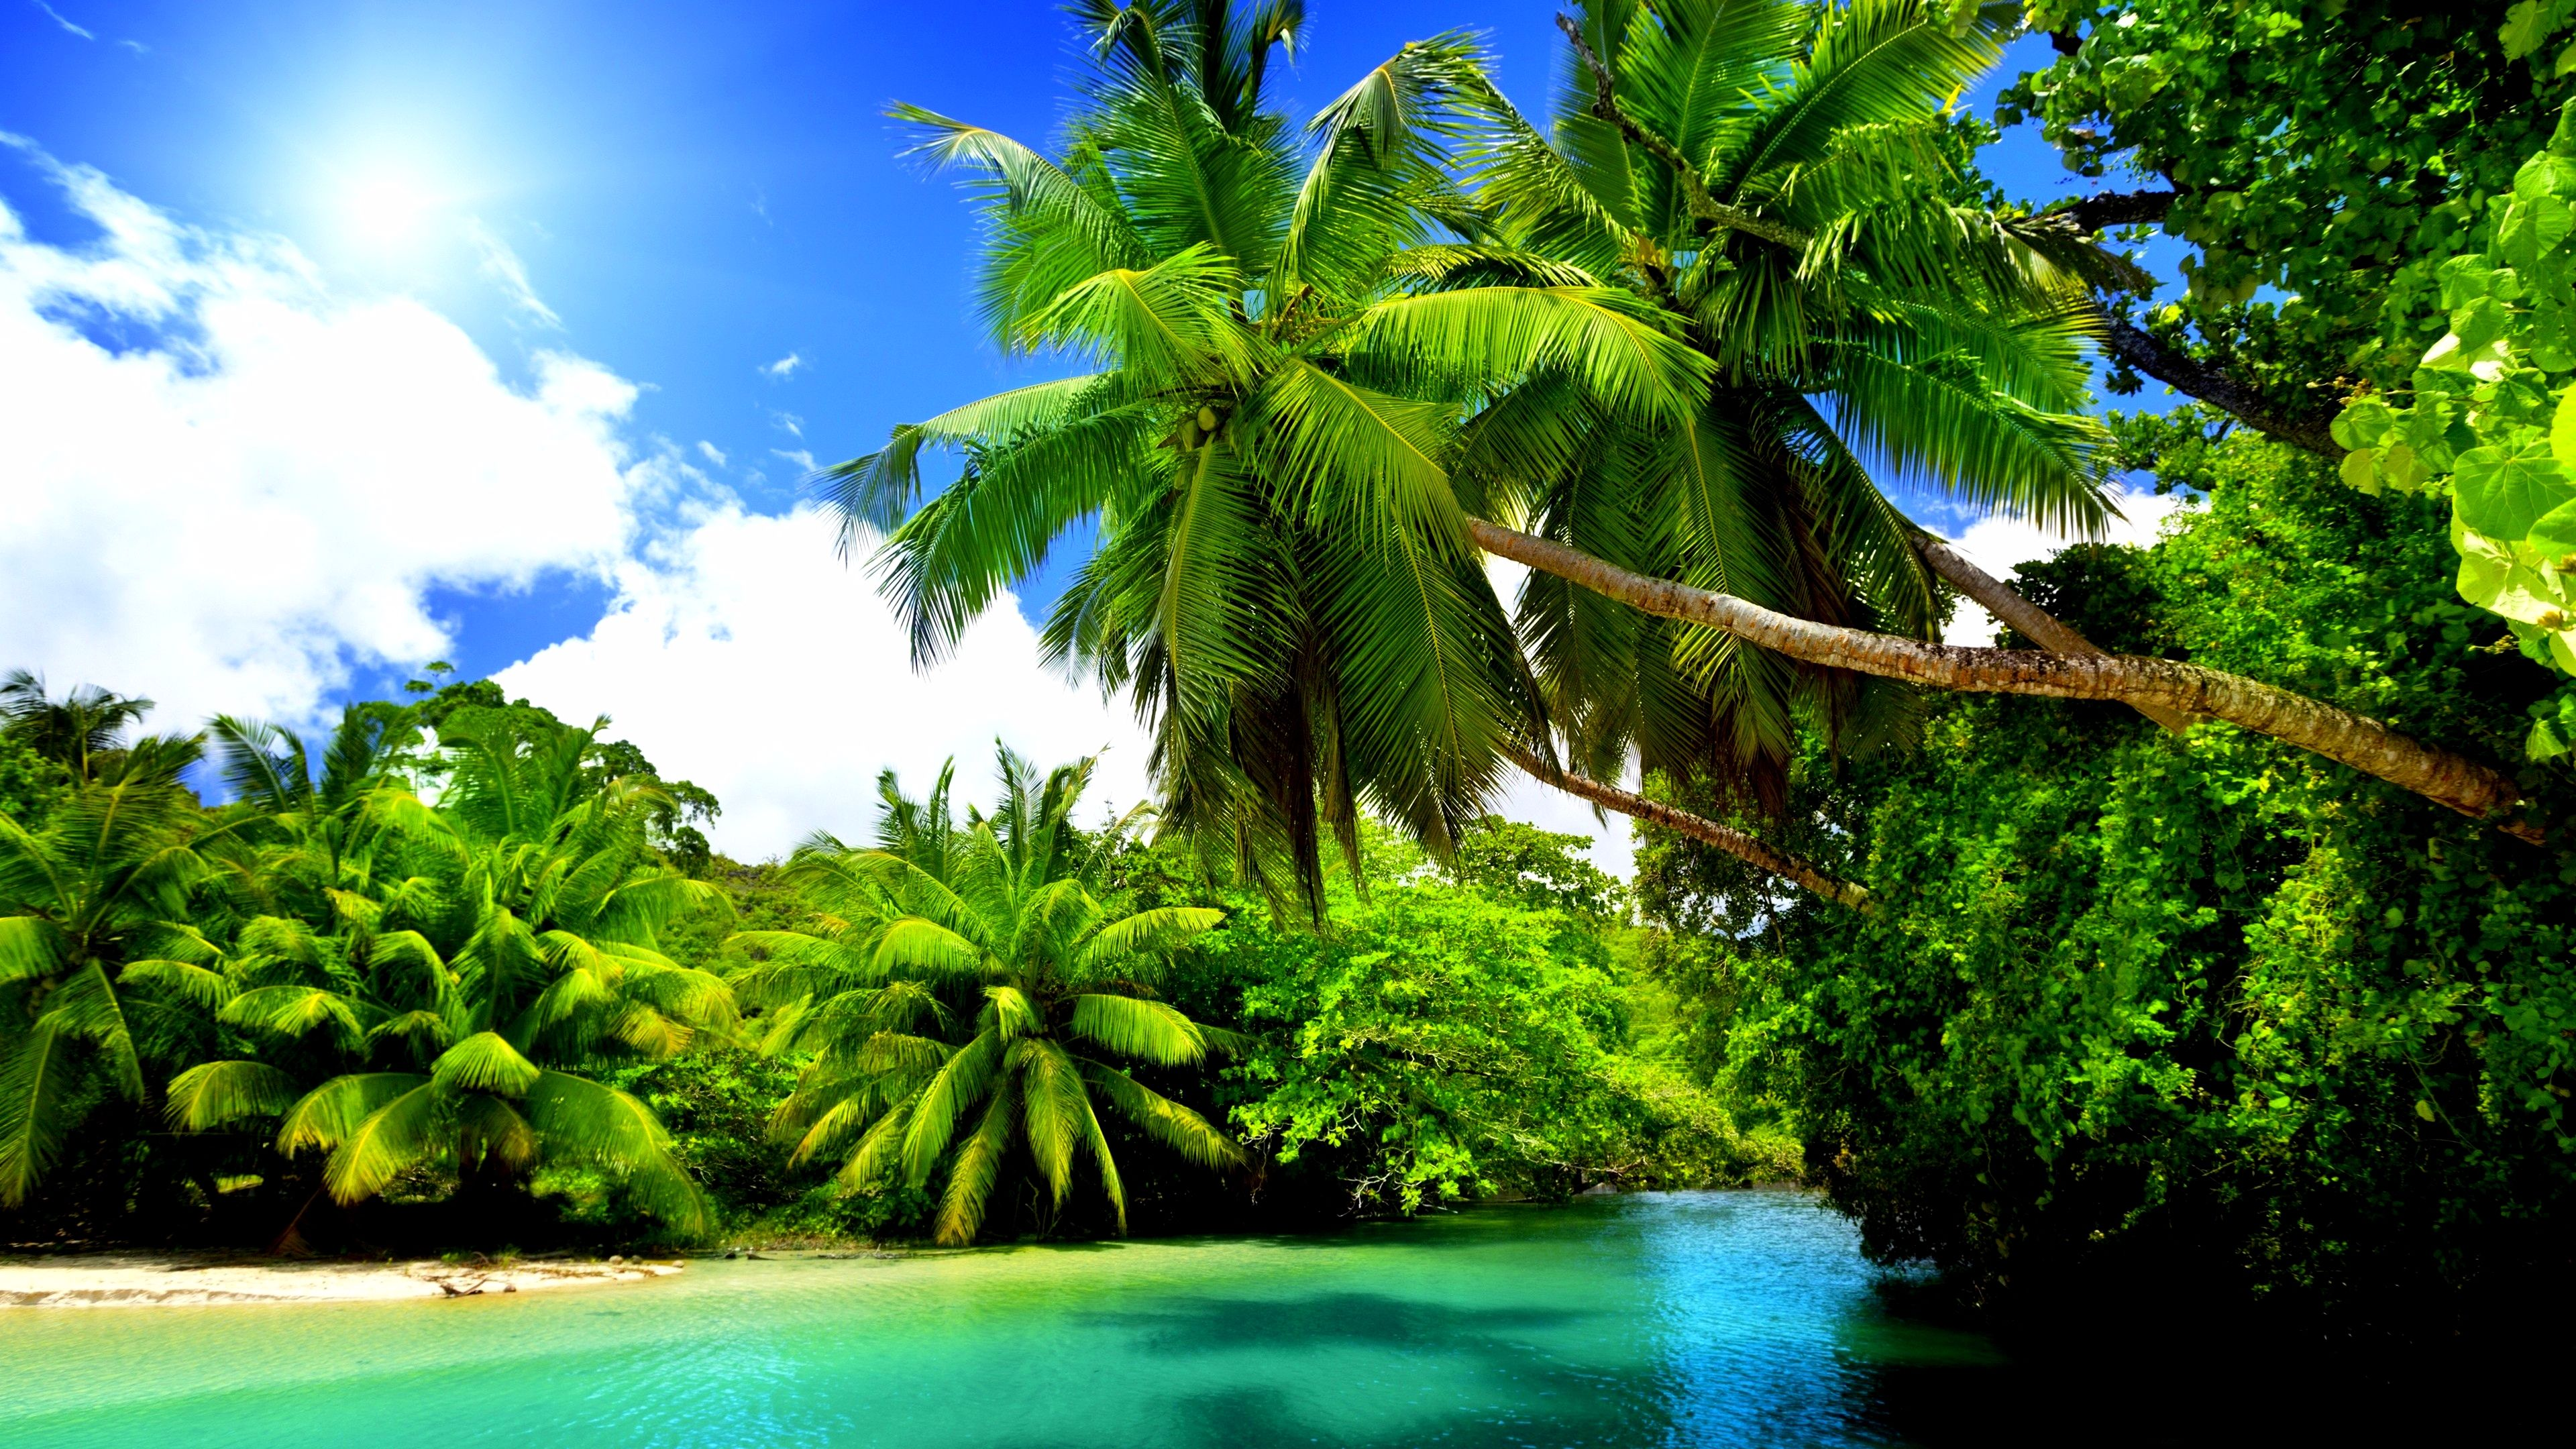 tropical nature wallpaper